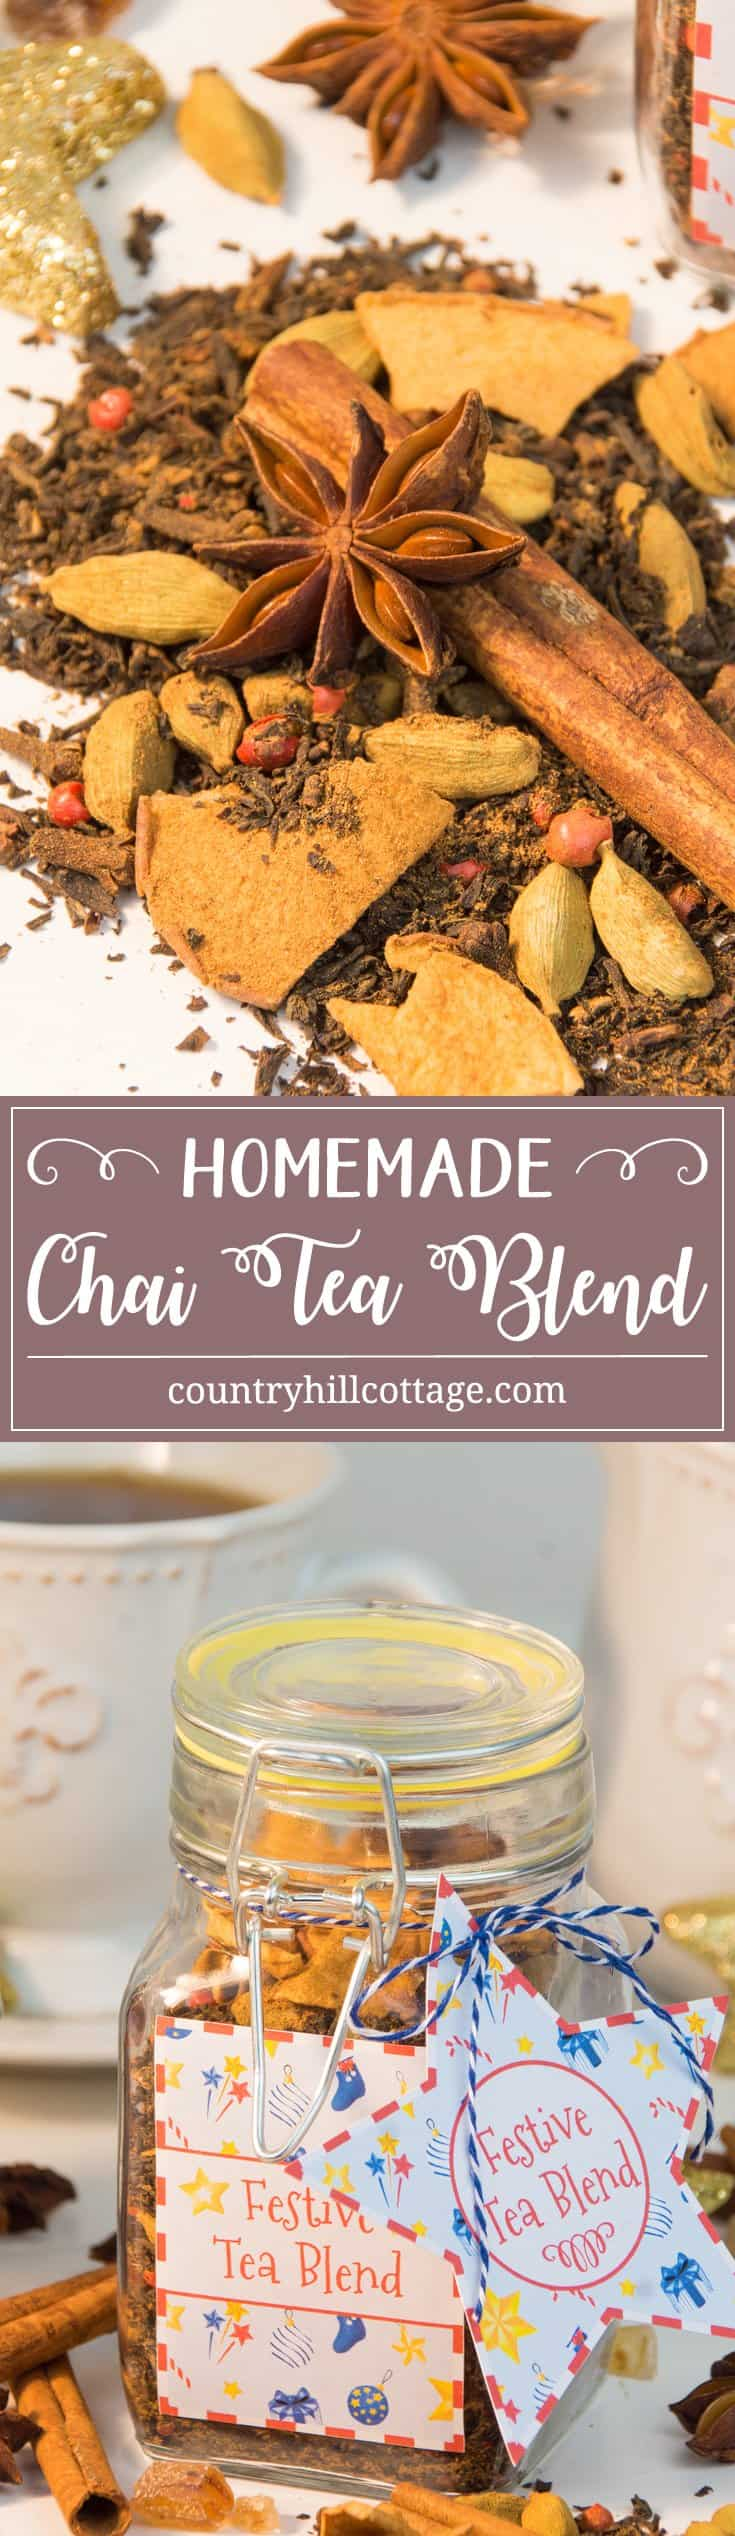 Create a festive chai tea blend with cinnamon, cardamom, gloves and pink pepper, and get free printable labels – 5 quick holiday gift giving ideas | countryhillcottage.com